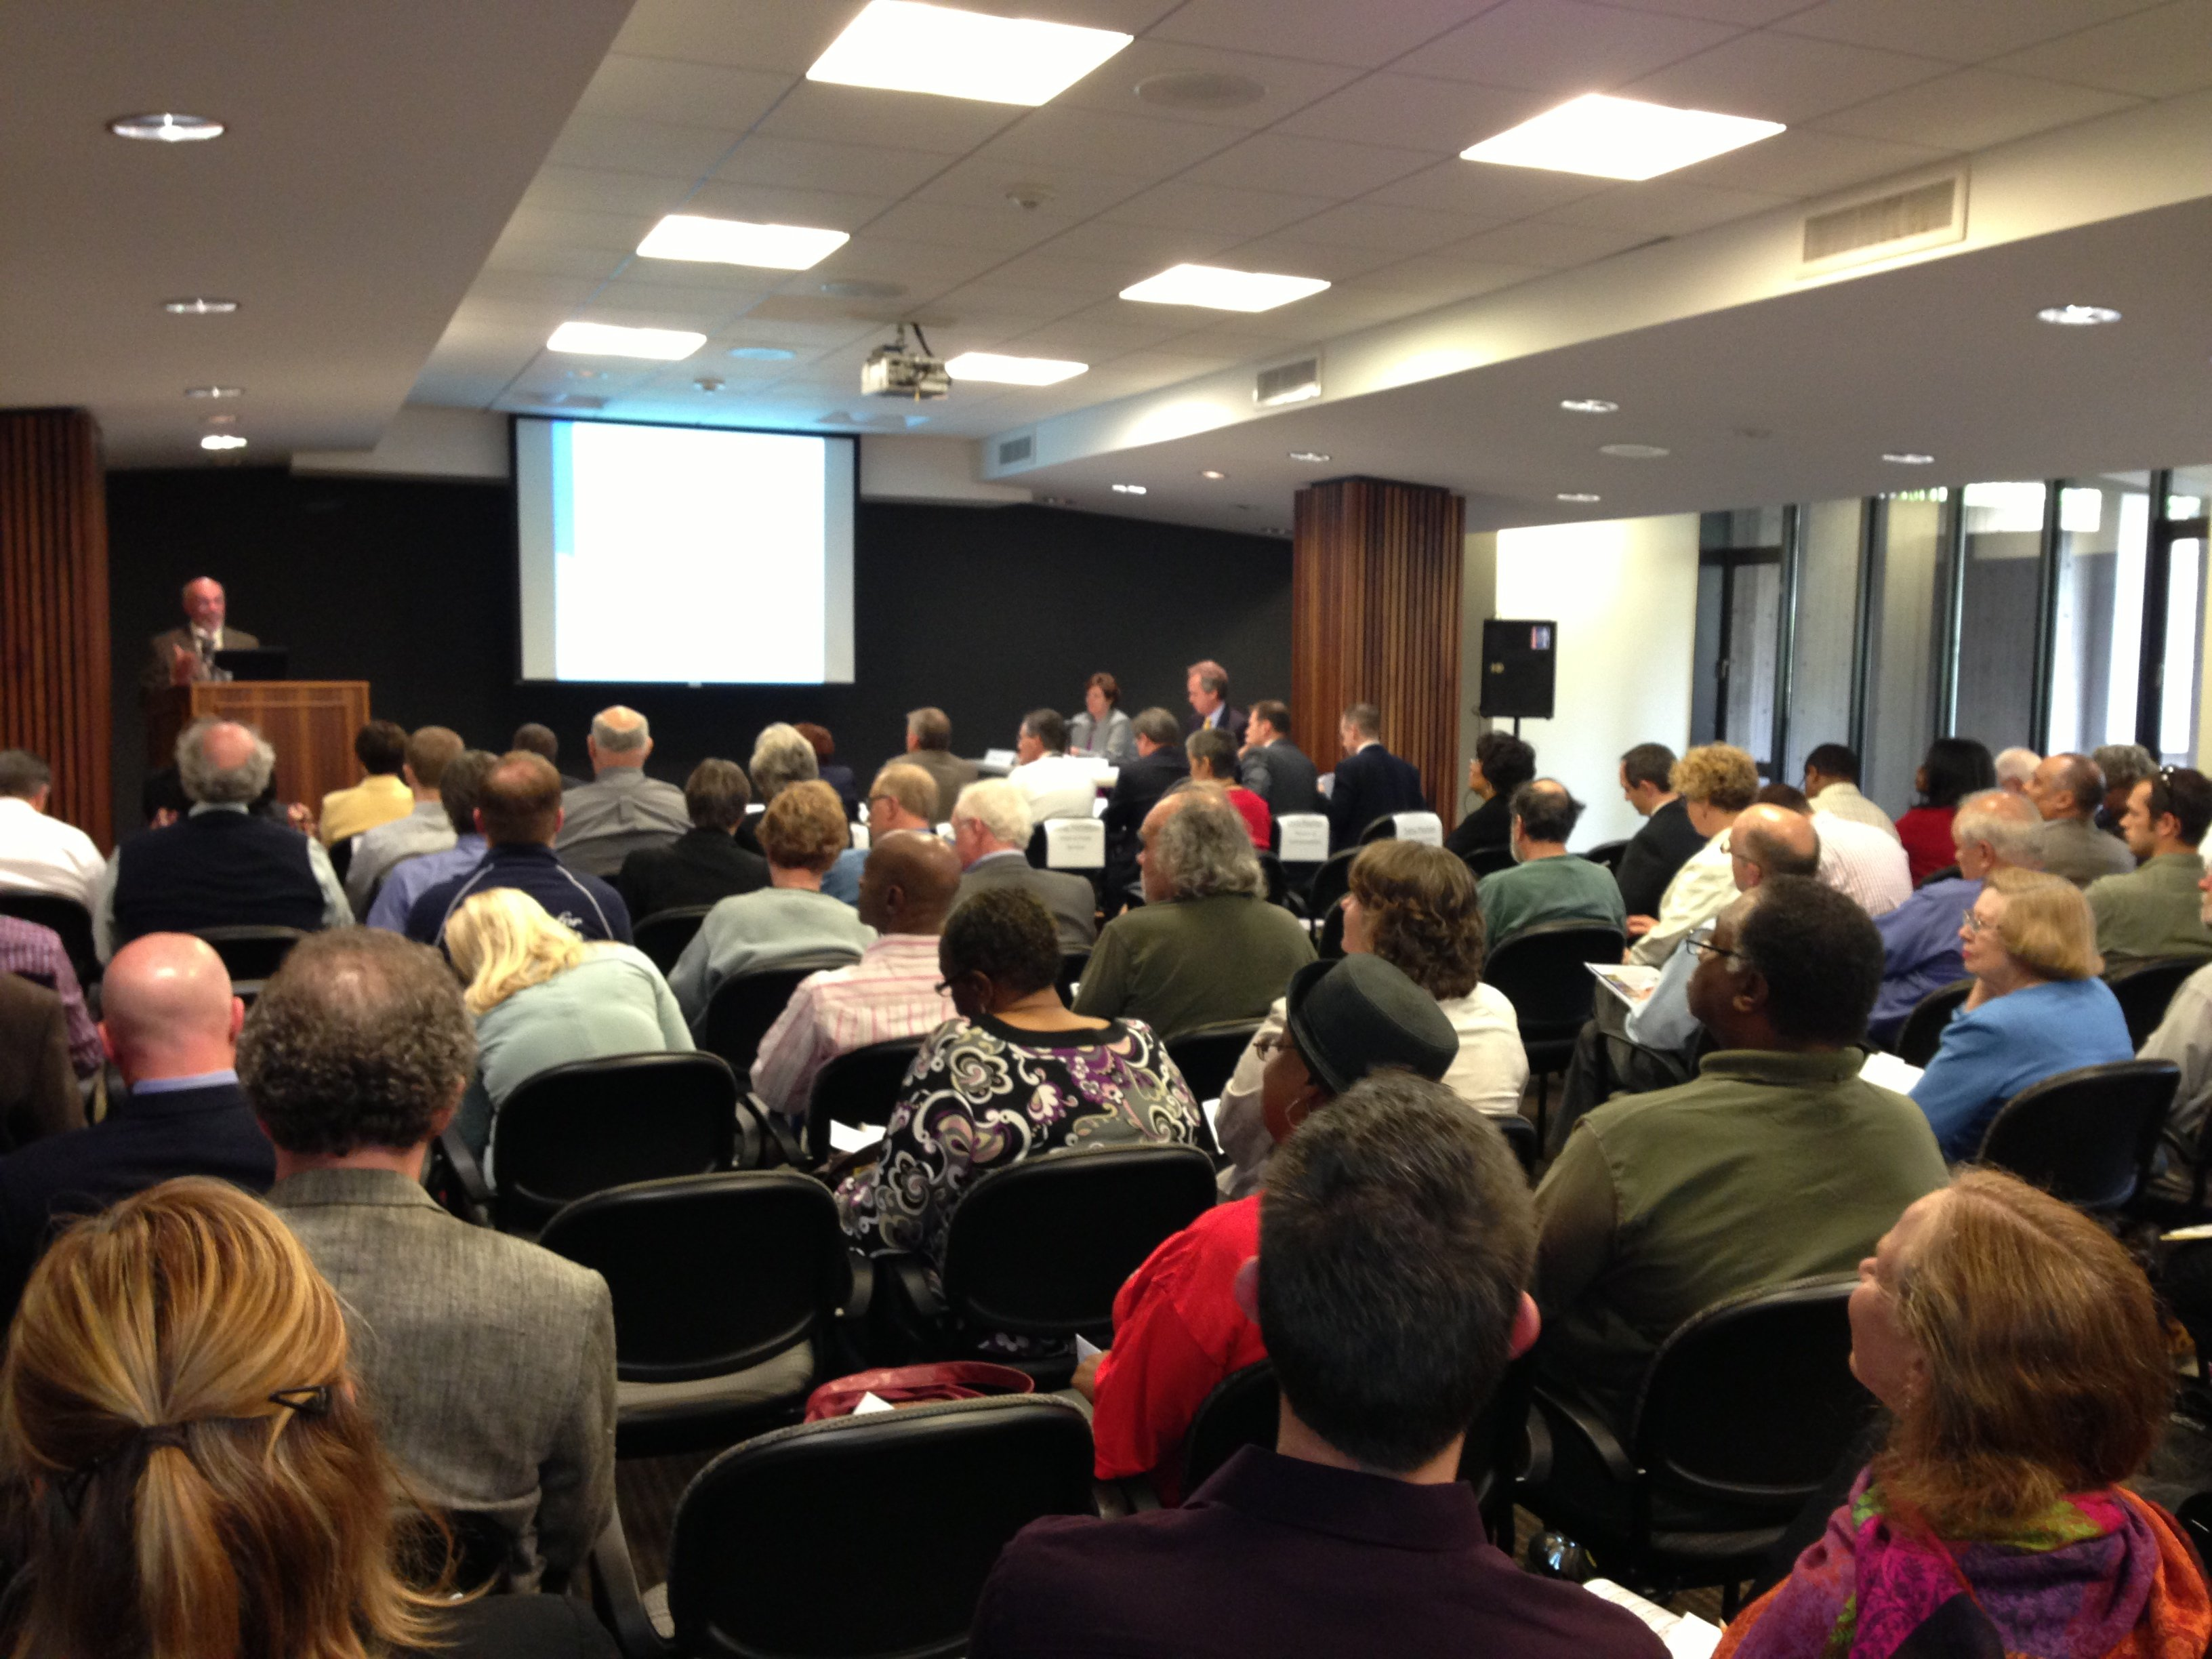 It was a full house for the first of many bi-monthly public meetings on vacant properties